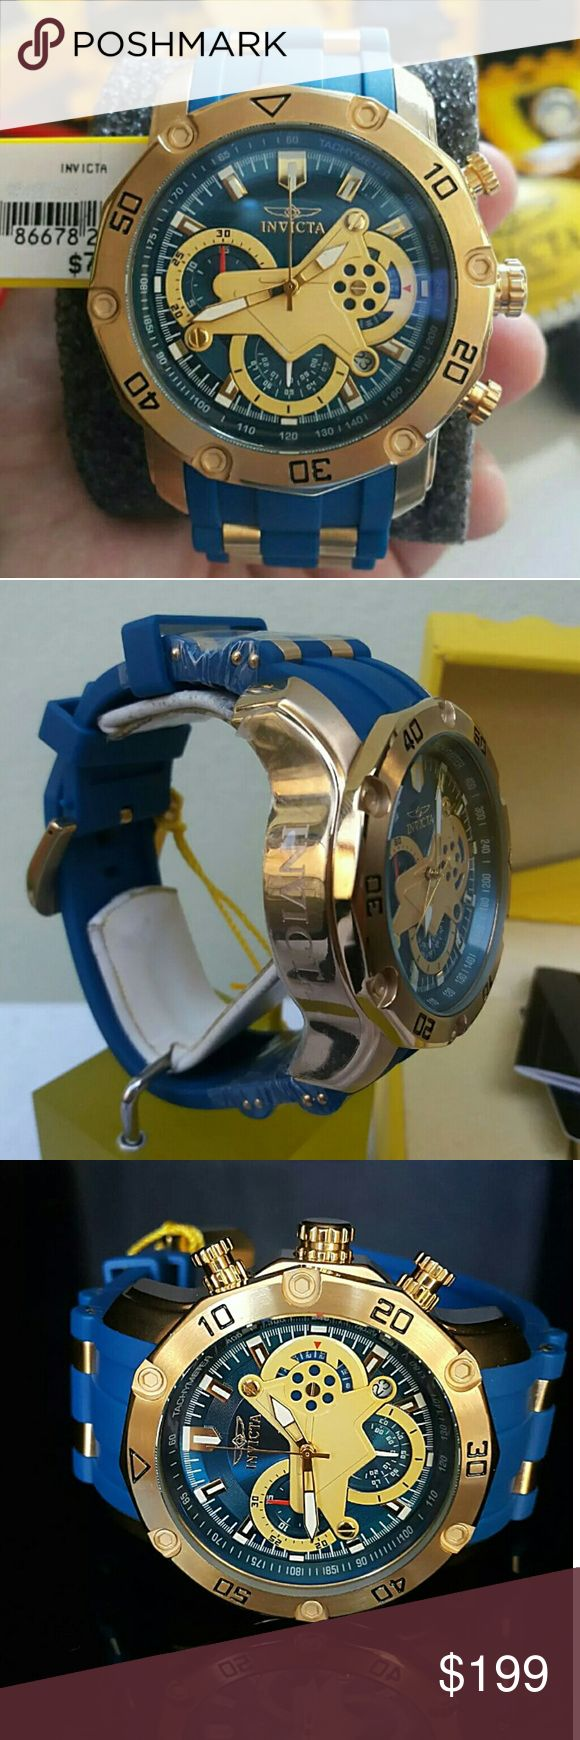 Weekend sale,new Invicta watch (REASONABLE OFFER) INVICTA PRO DIVER SCUBA 3.0 BLUE/YELLOW 50MM CHRONOGRAPH BLUE POLYURETHANE WATCH     Firm price firm price firm price firm price    $283.00  . AUTHENTIC WATCH   . AUTHENTIC BOX   . AUTHENTIC MANUAL     SHIPPING   PLEASE ALLOW FEW BUSINESS DAYS FOR ME TO SHIPPED IT OFF.I HAVE TO GET IT FROM MY STORE.     THANK YOU FOR YOUR UNDERSTANDING. Invicta Accessories Watches